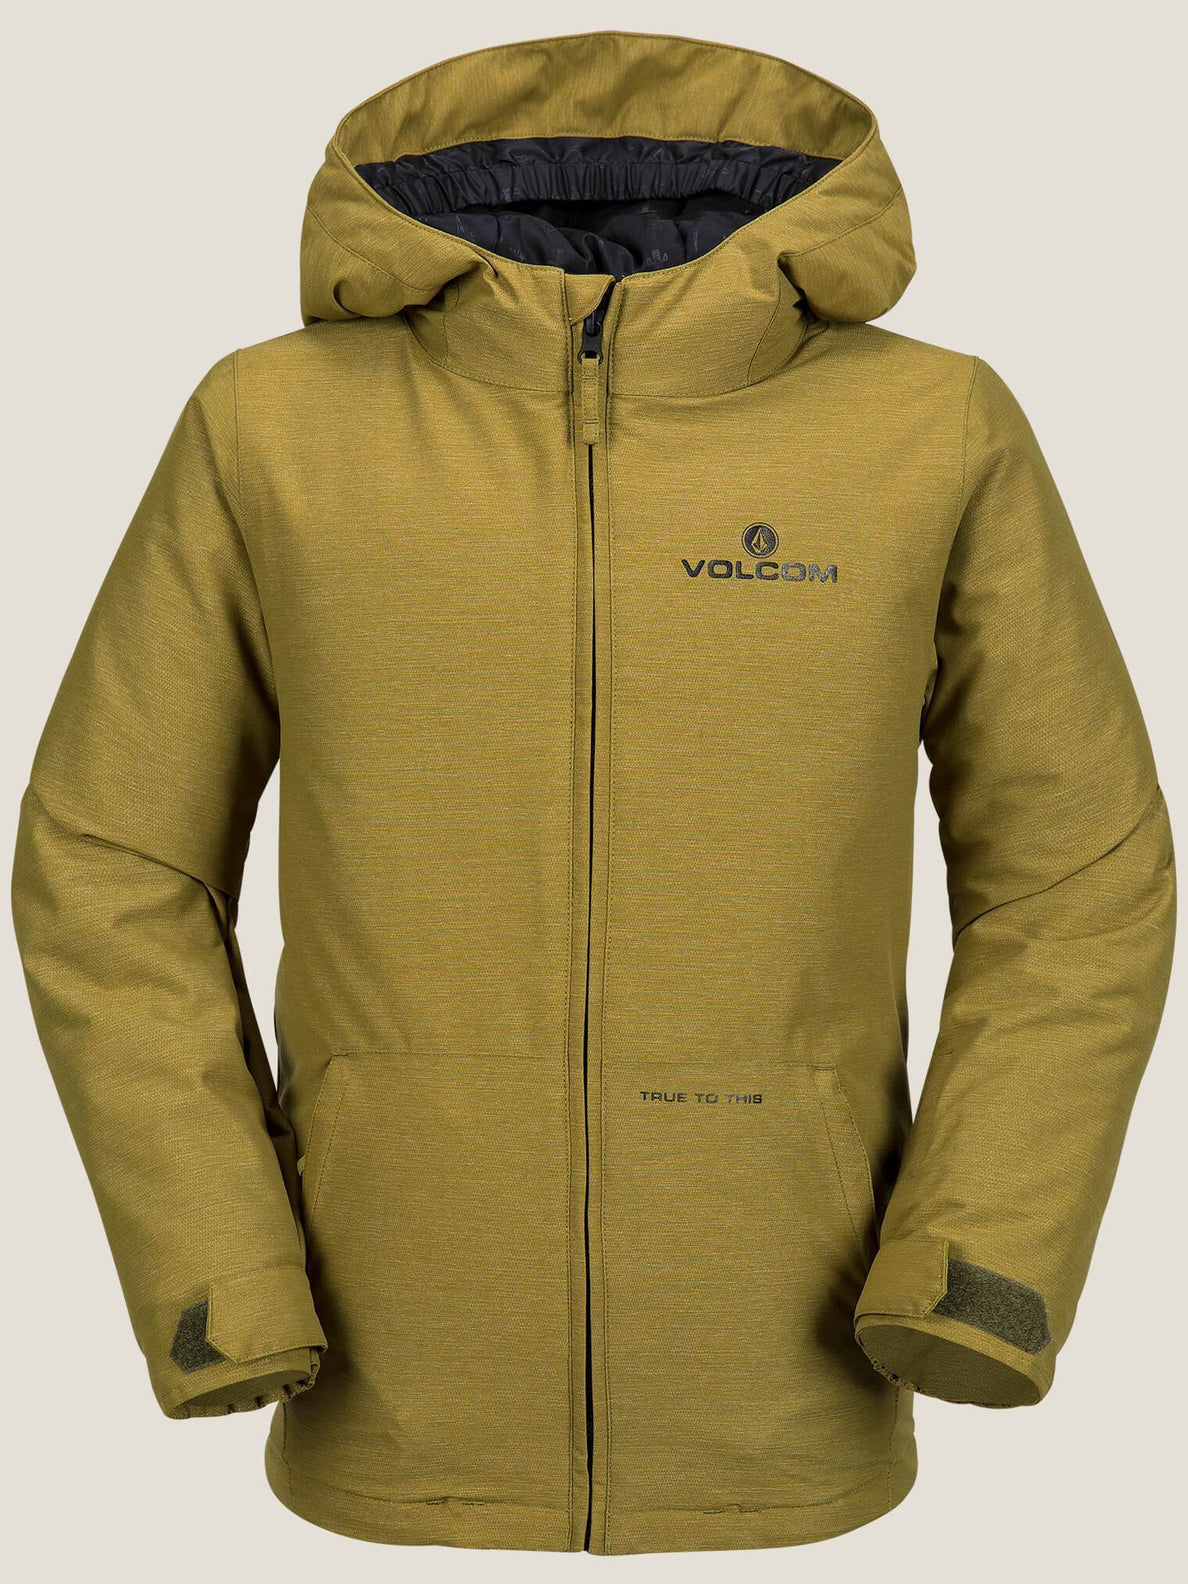 Selkirk Insulated Jacket - Moss (Kids)